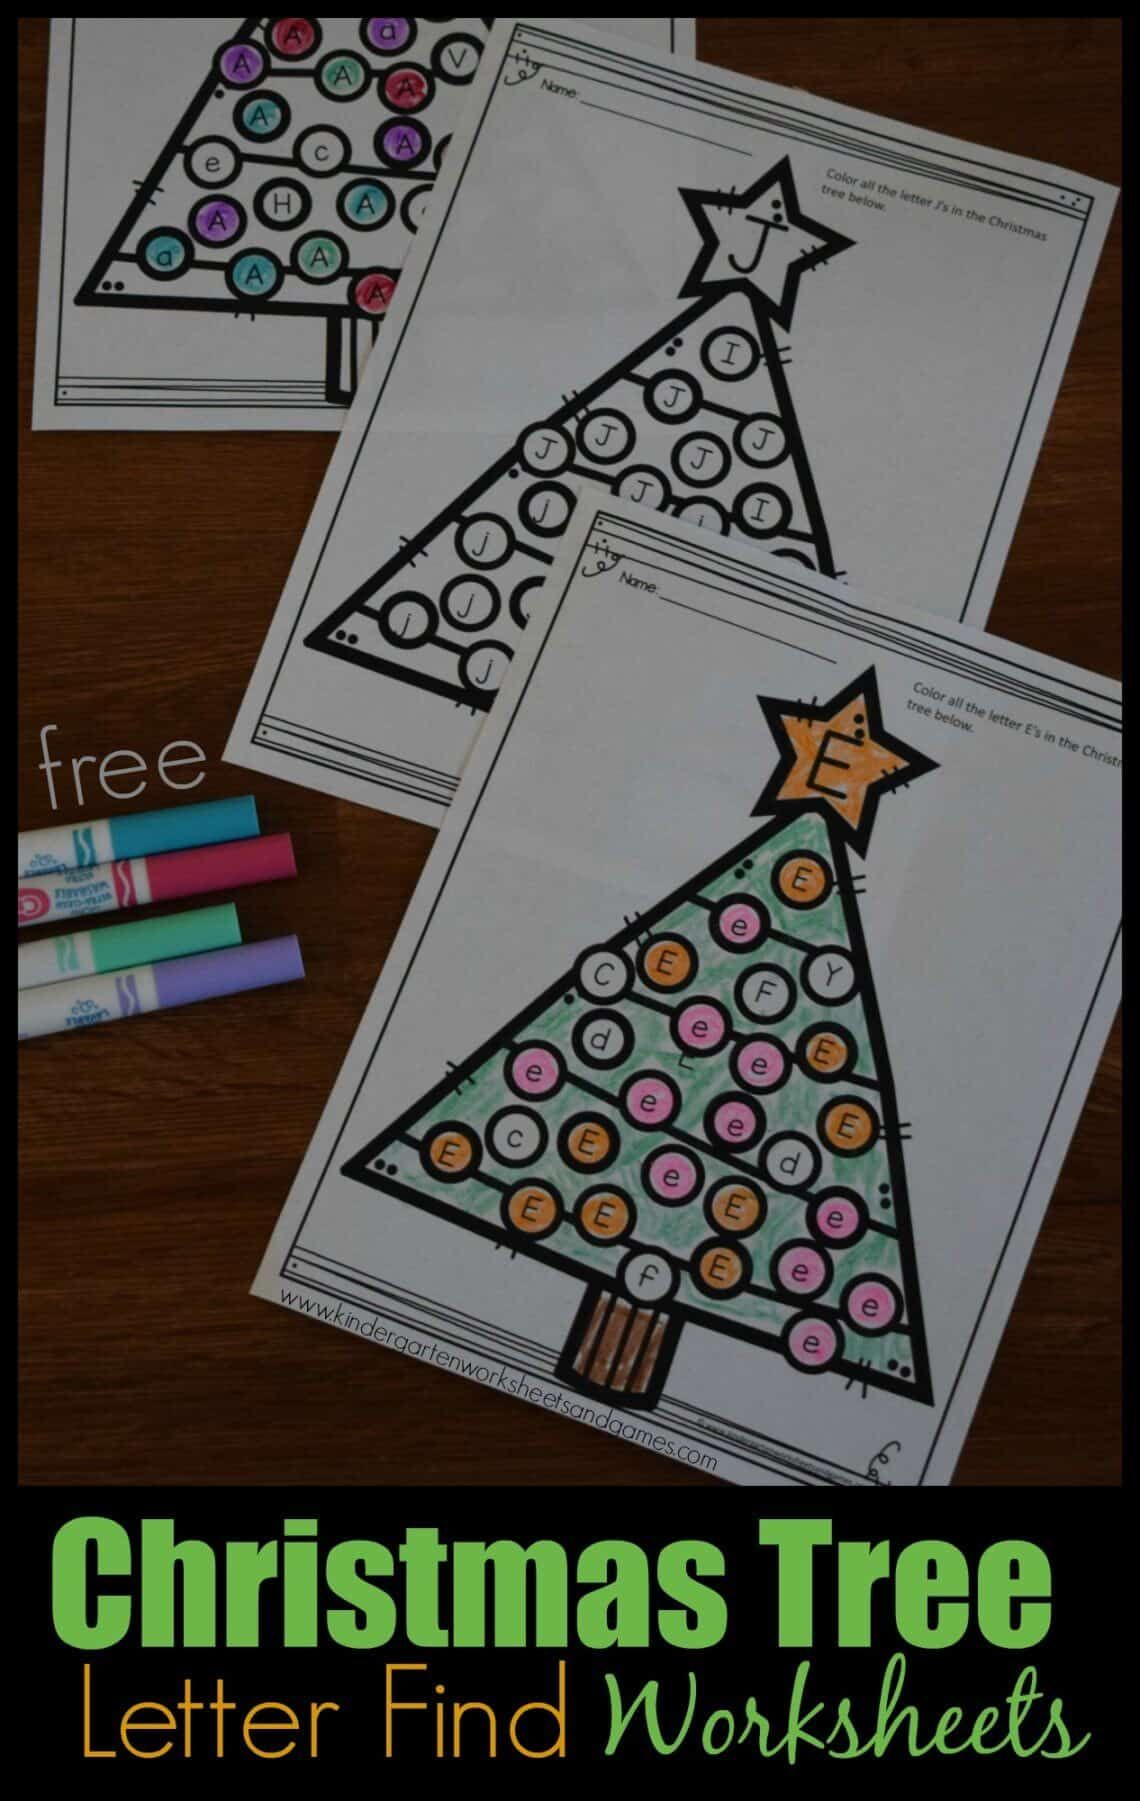 Free Christmas Tree Letter Find Worksheets